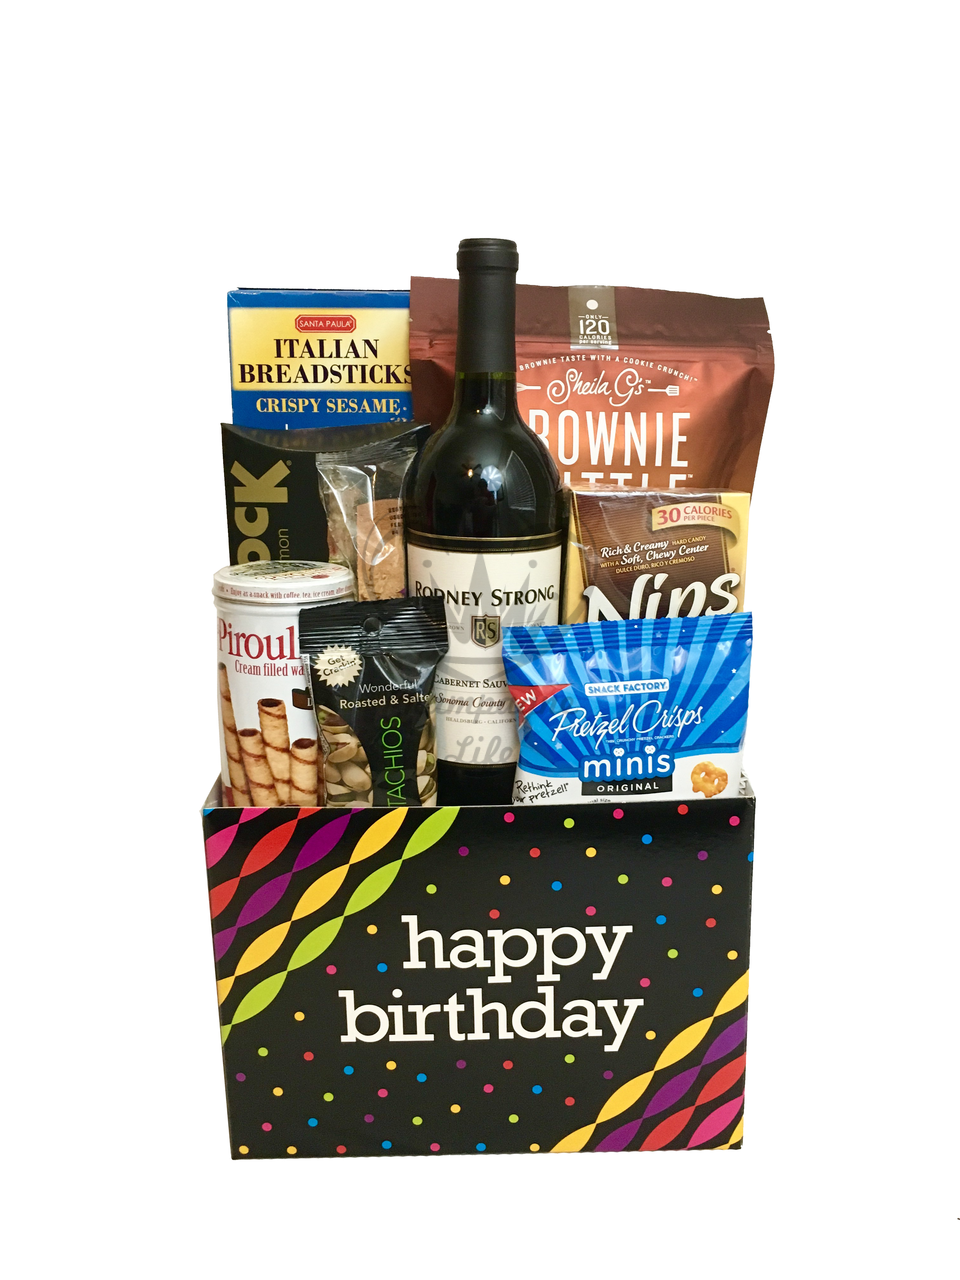 The Wine Birthday Gift Box Is Available For Same Day Delivery In Las Vegas NV Custom Gifts Corporate Or Build Your Own Gourmet Basket